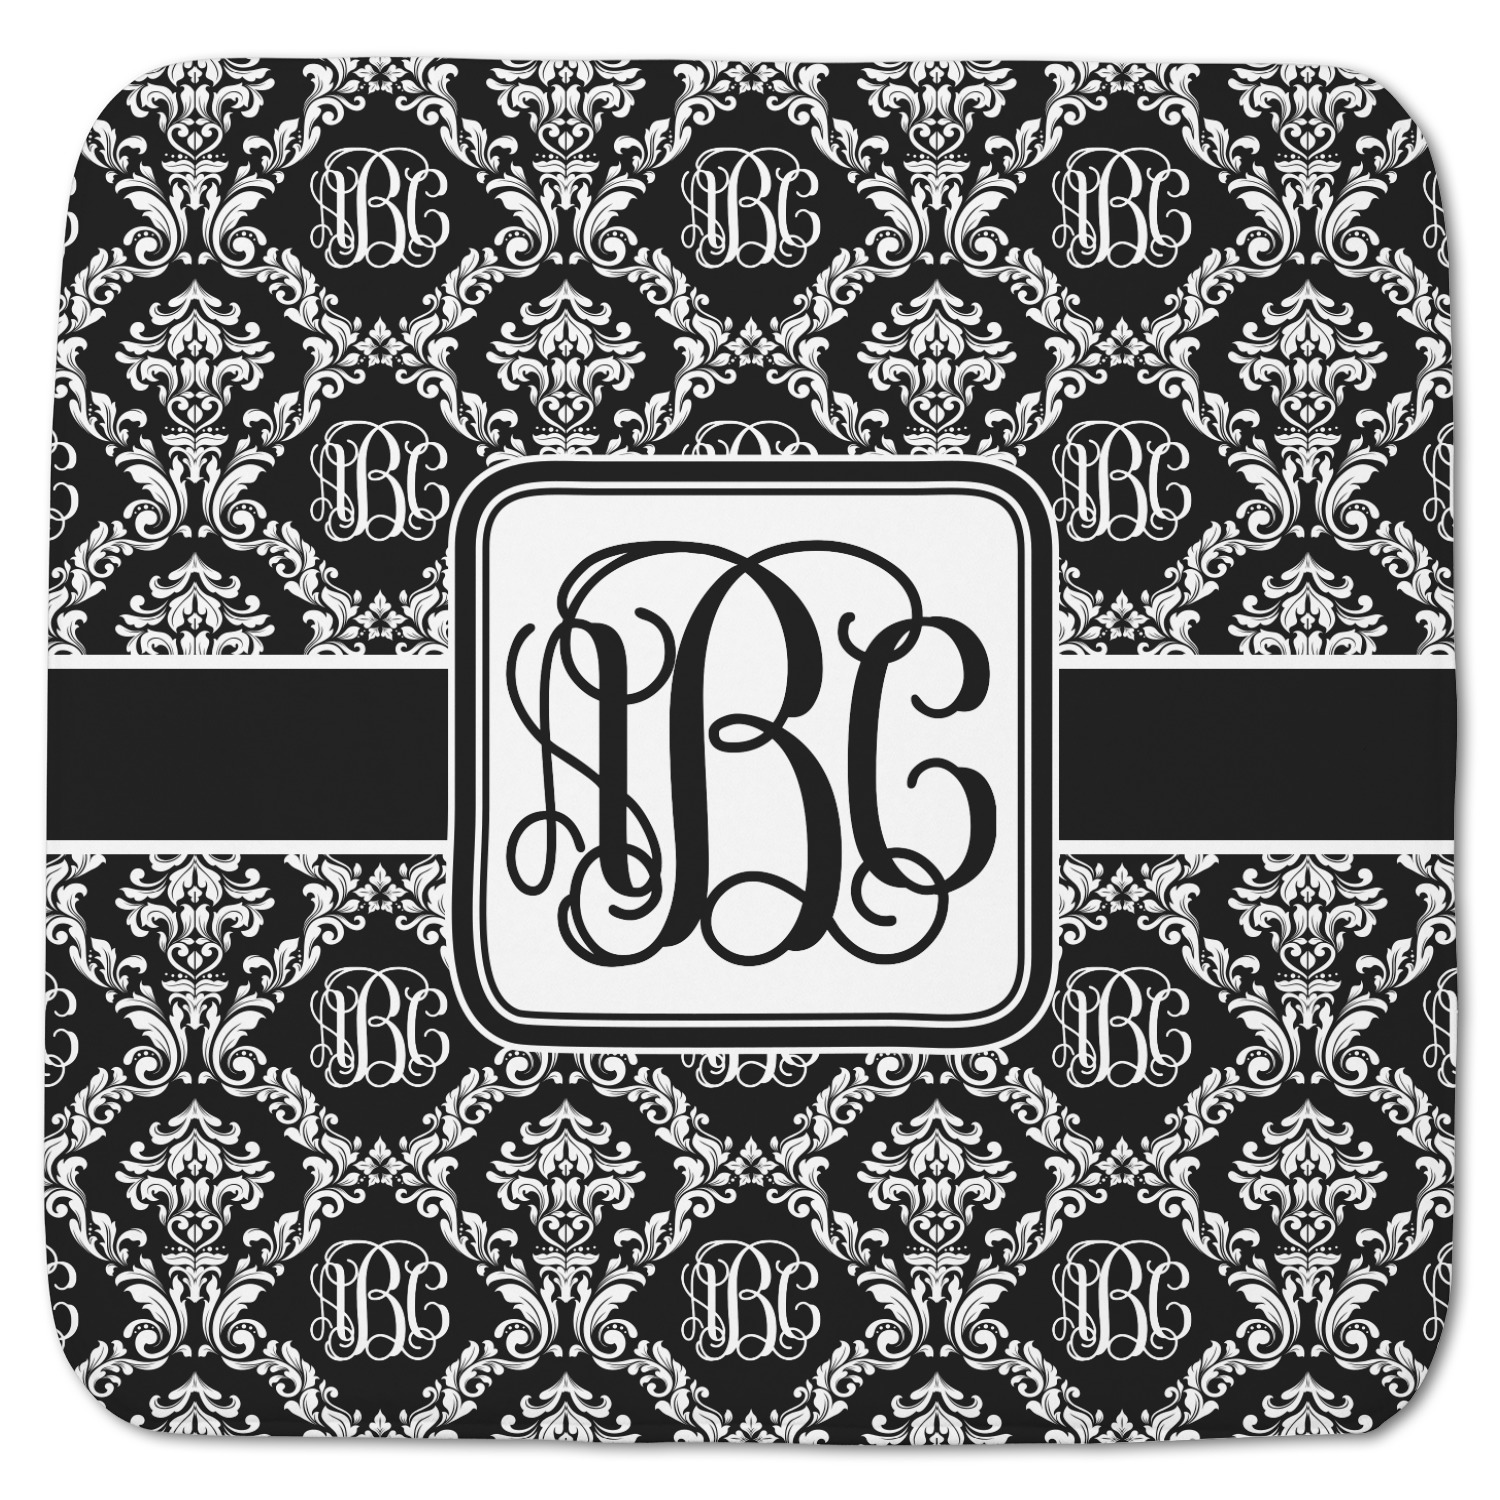 Model Monogrammed  Personalized  Embroidered Bath Mat